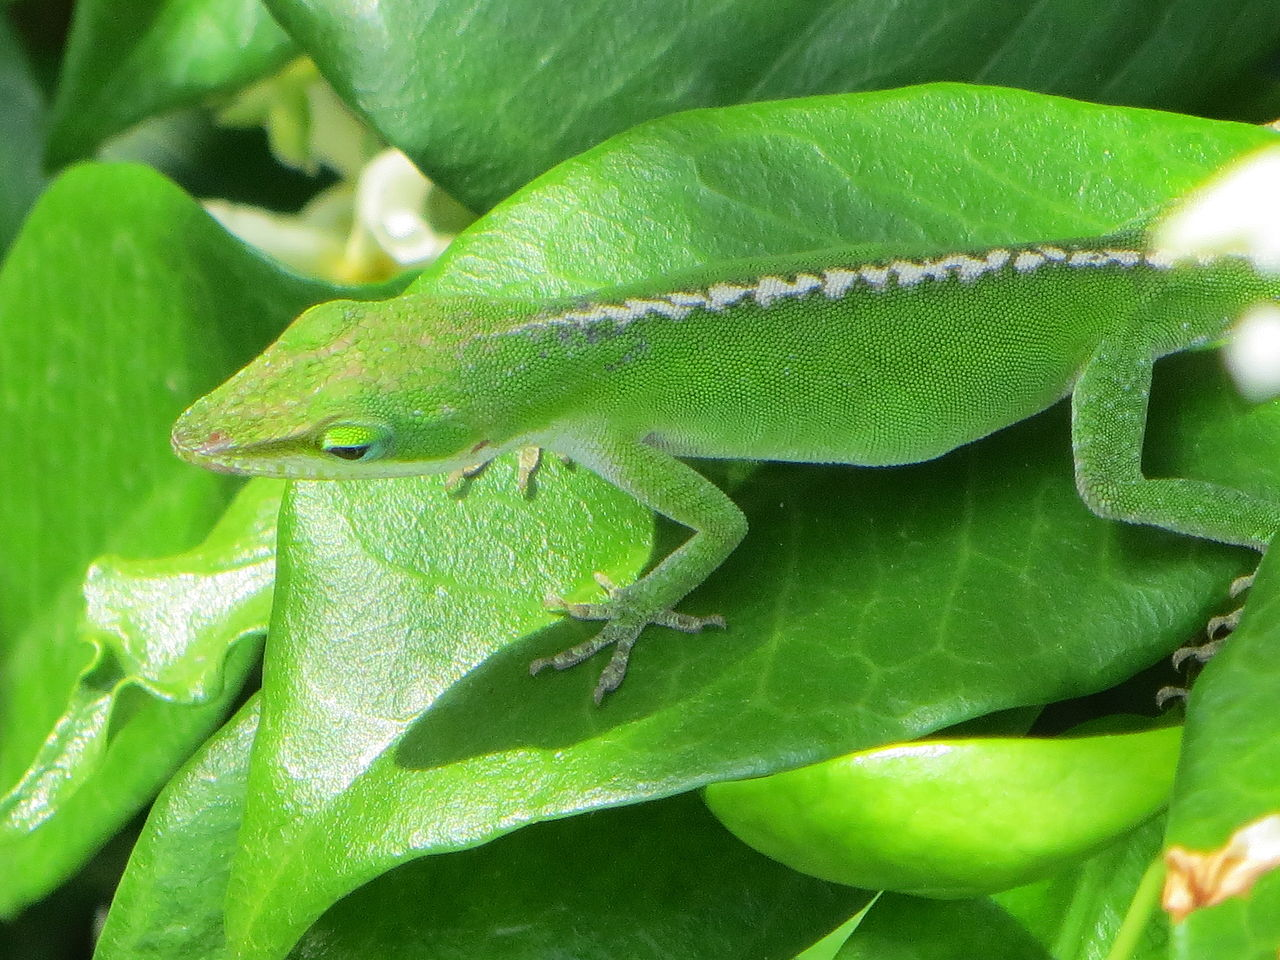 Stripe in green anole